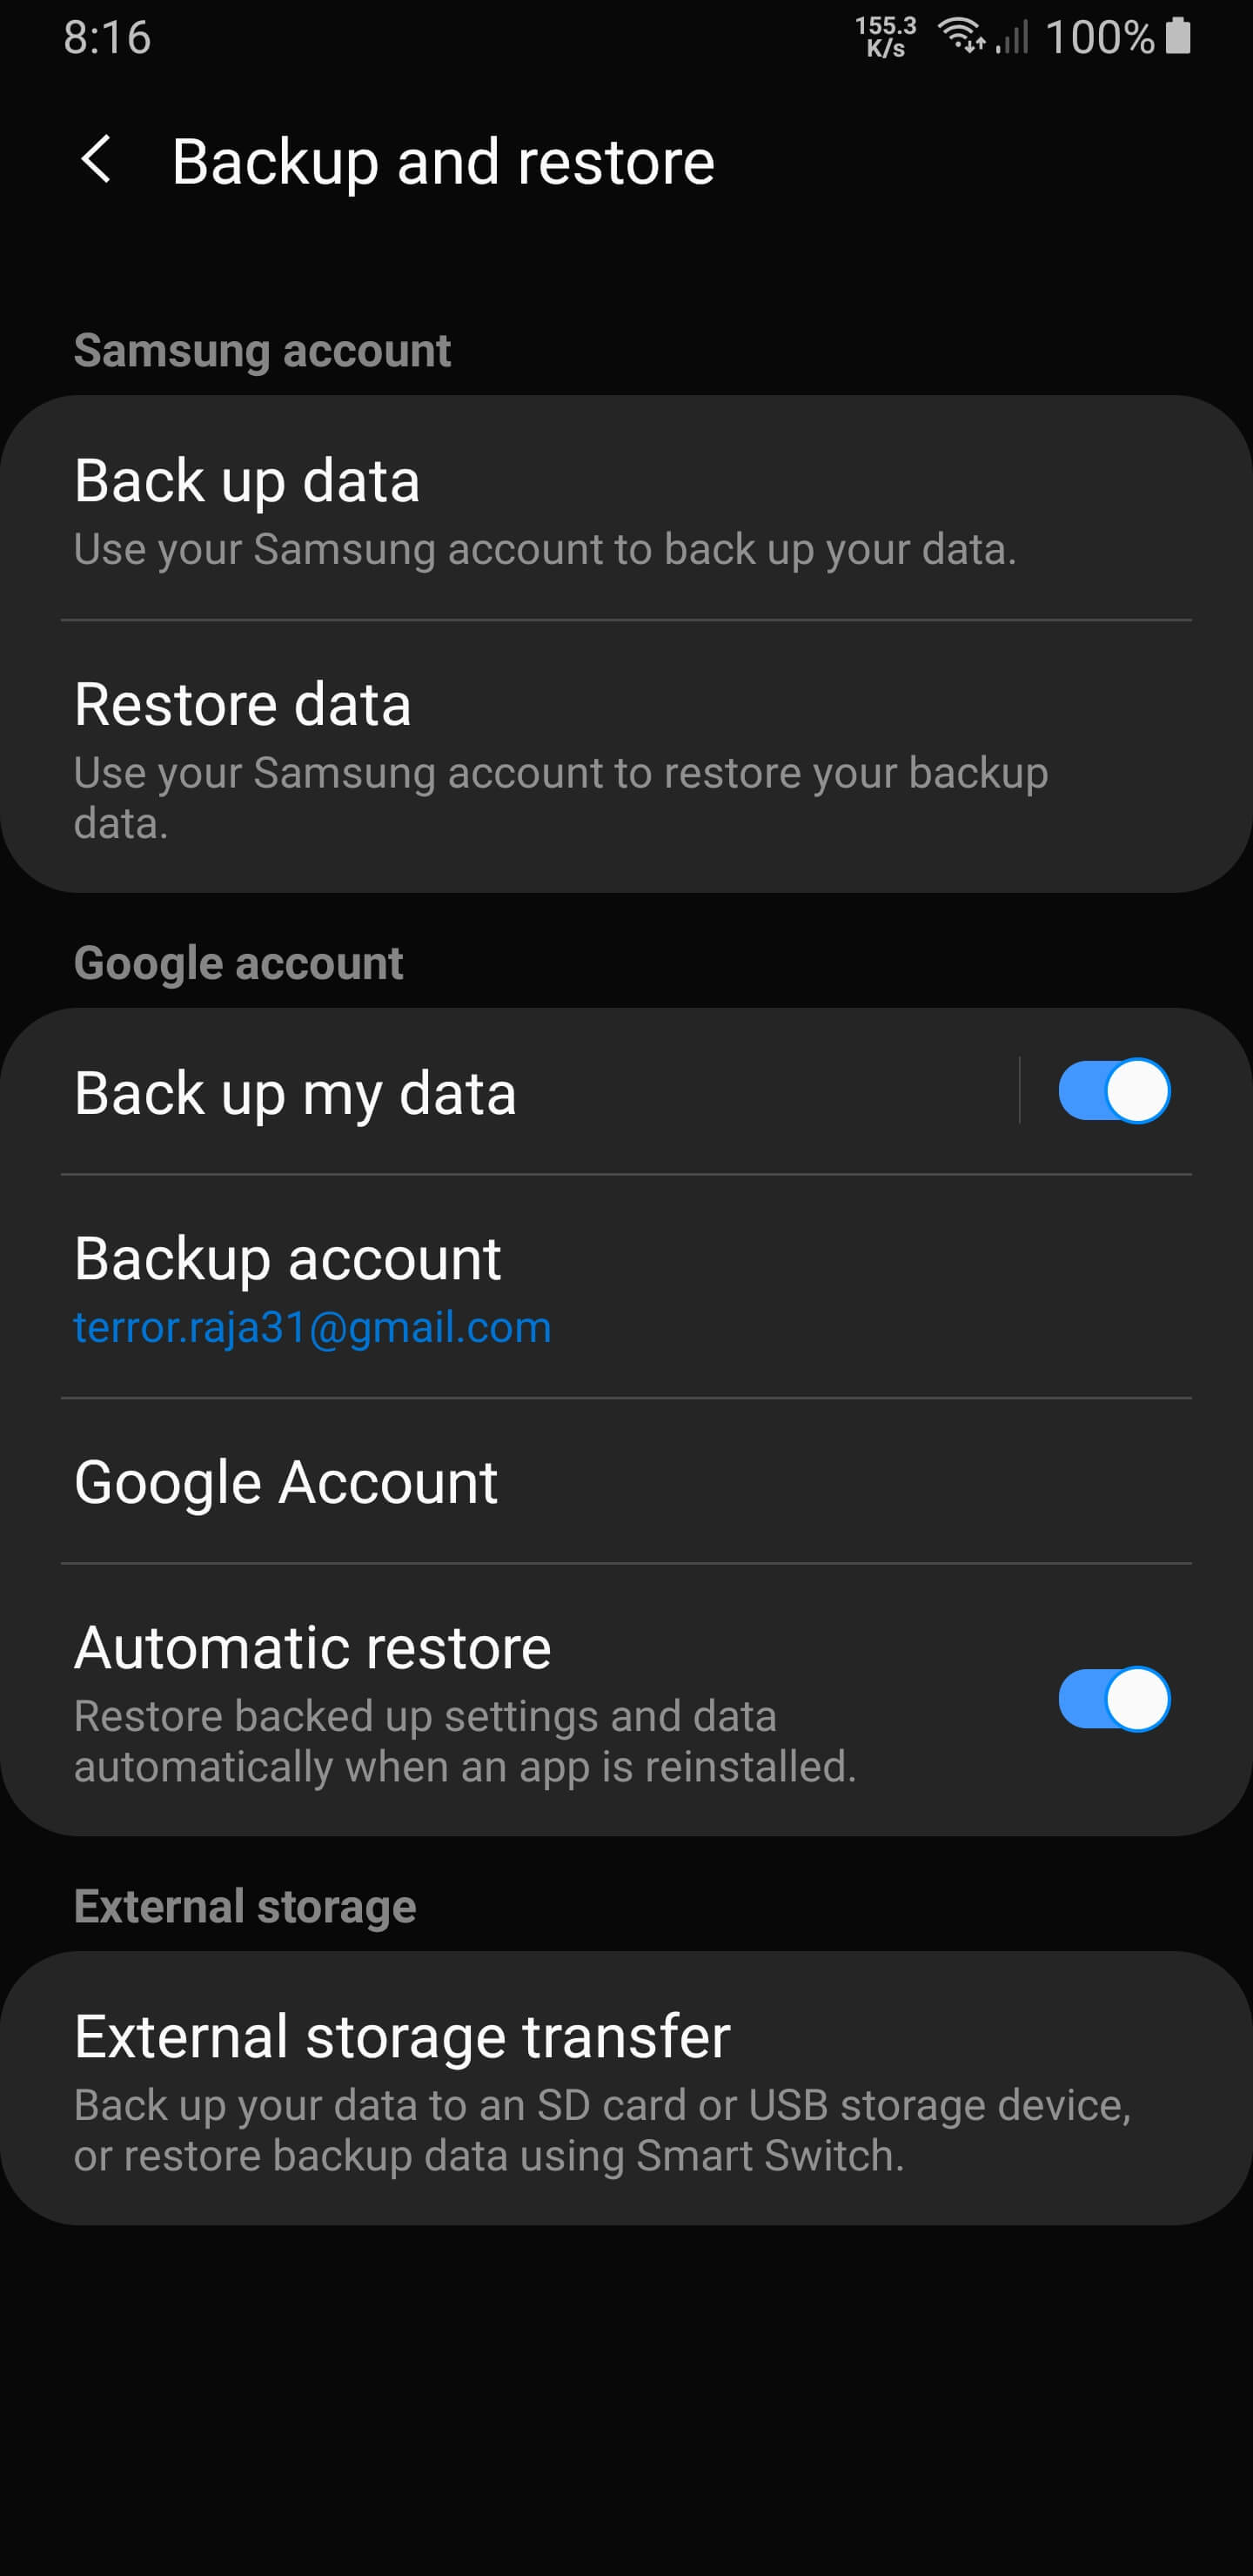 How to transfer all data from old phone to a new Android phone